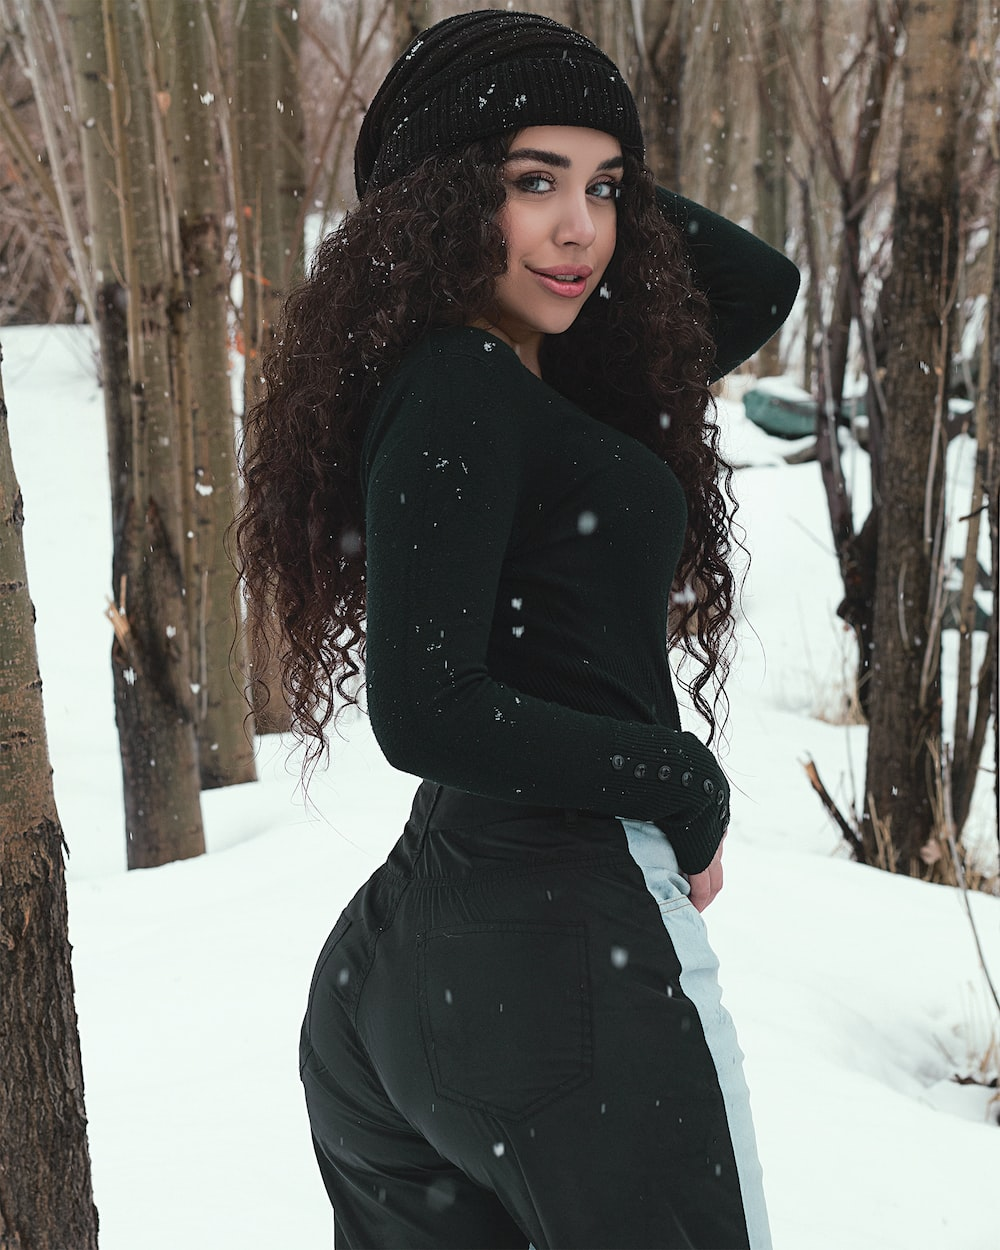 woman in black long sleeve dress standing on snow covered ground during daytime